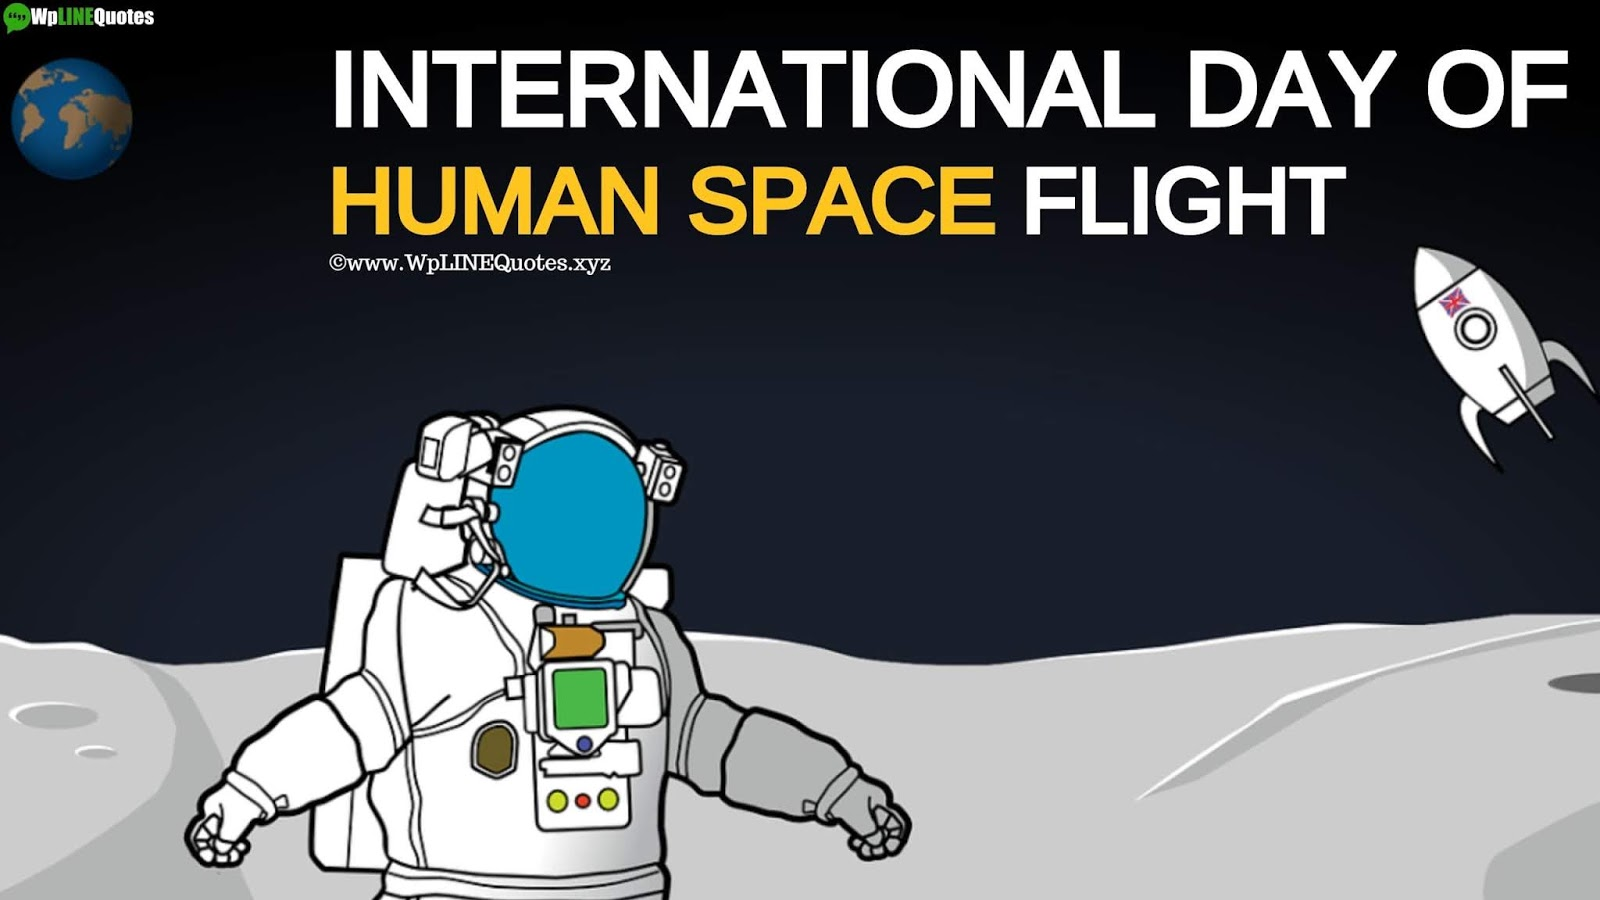 International Day of Human Space Flight Quotes, Theme, History, Facts, Images, Photos, Wallpaper